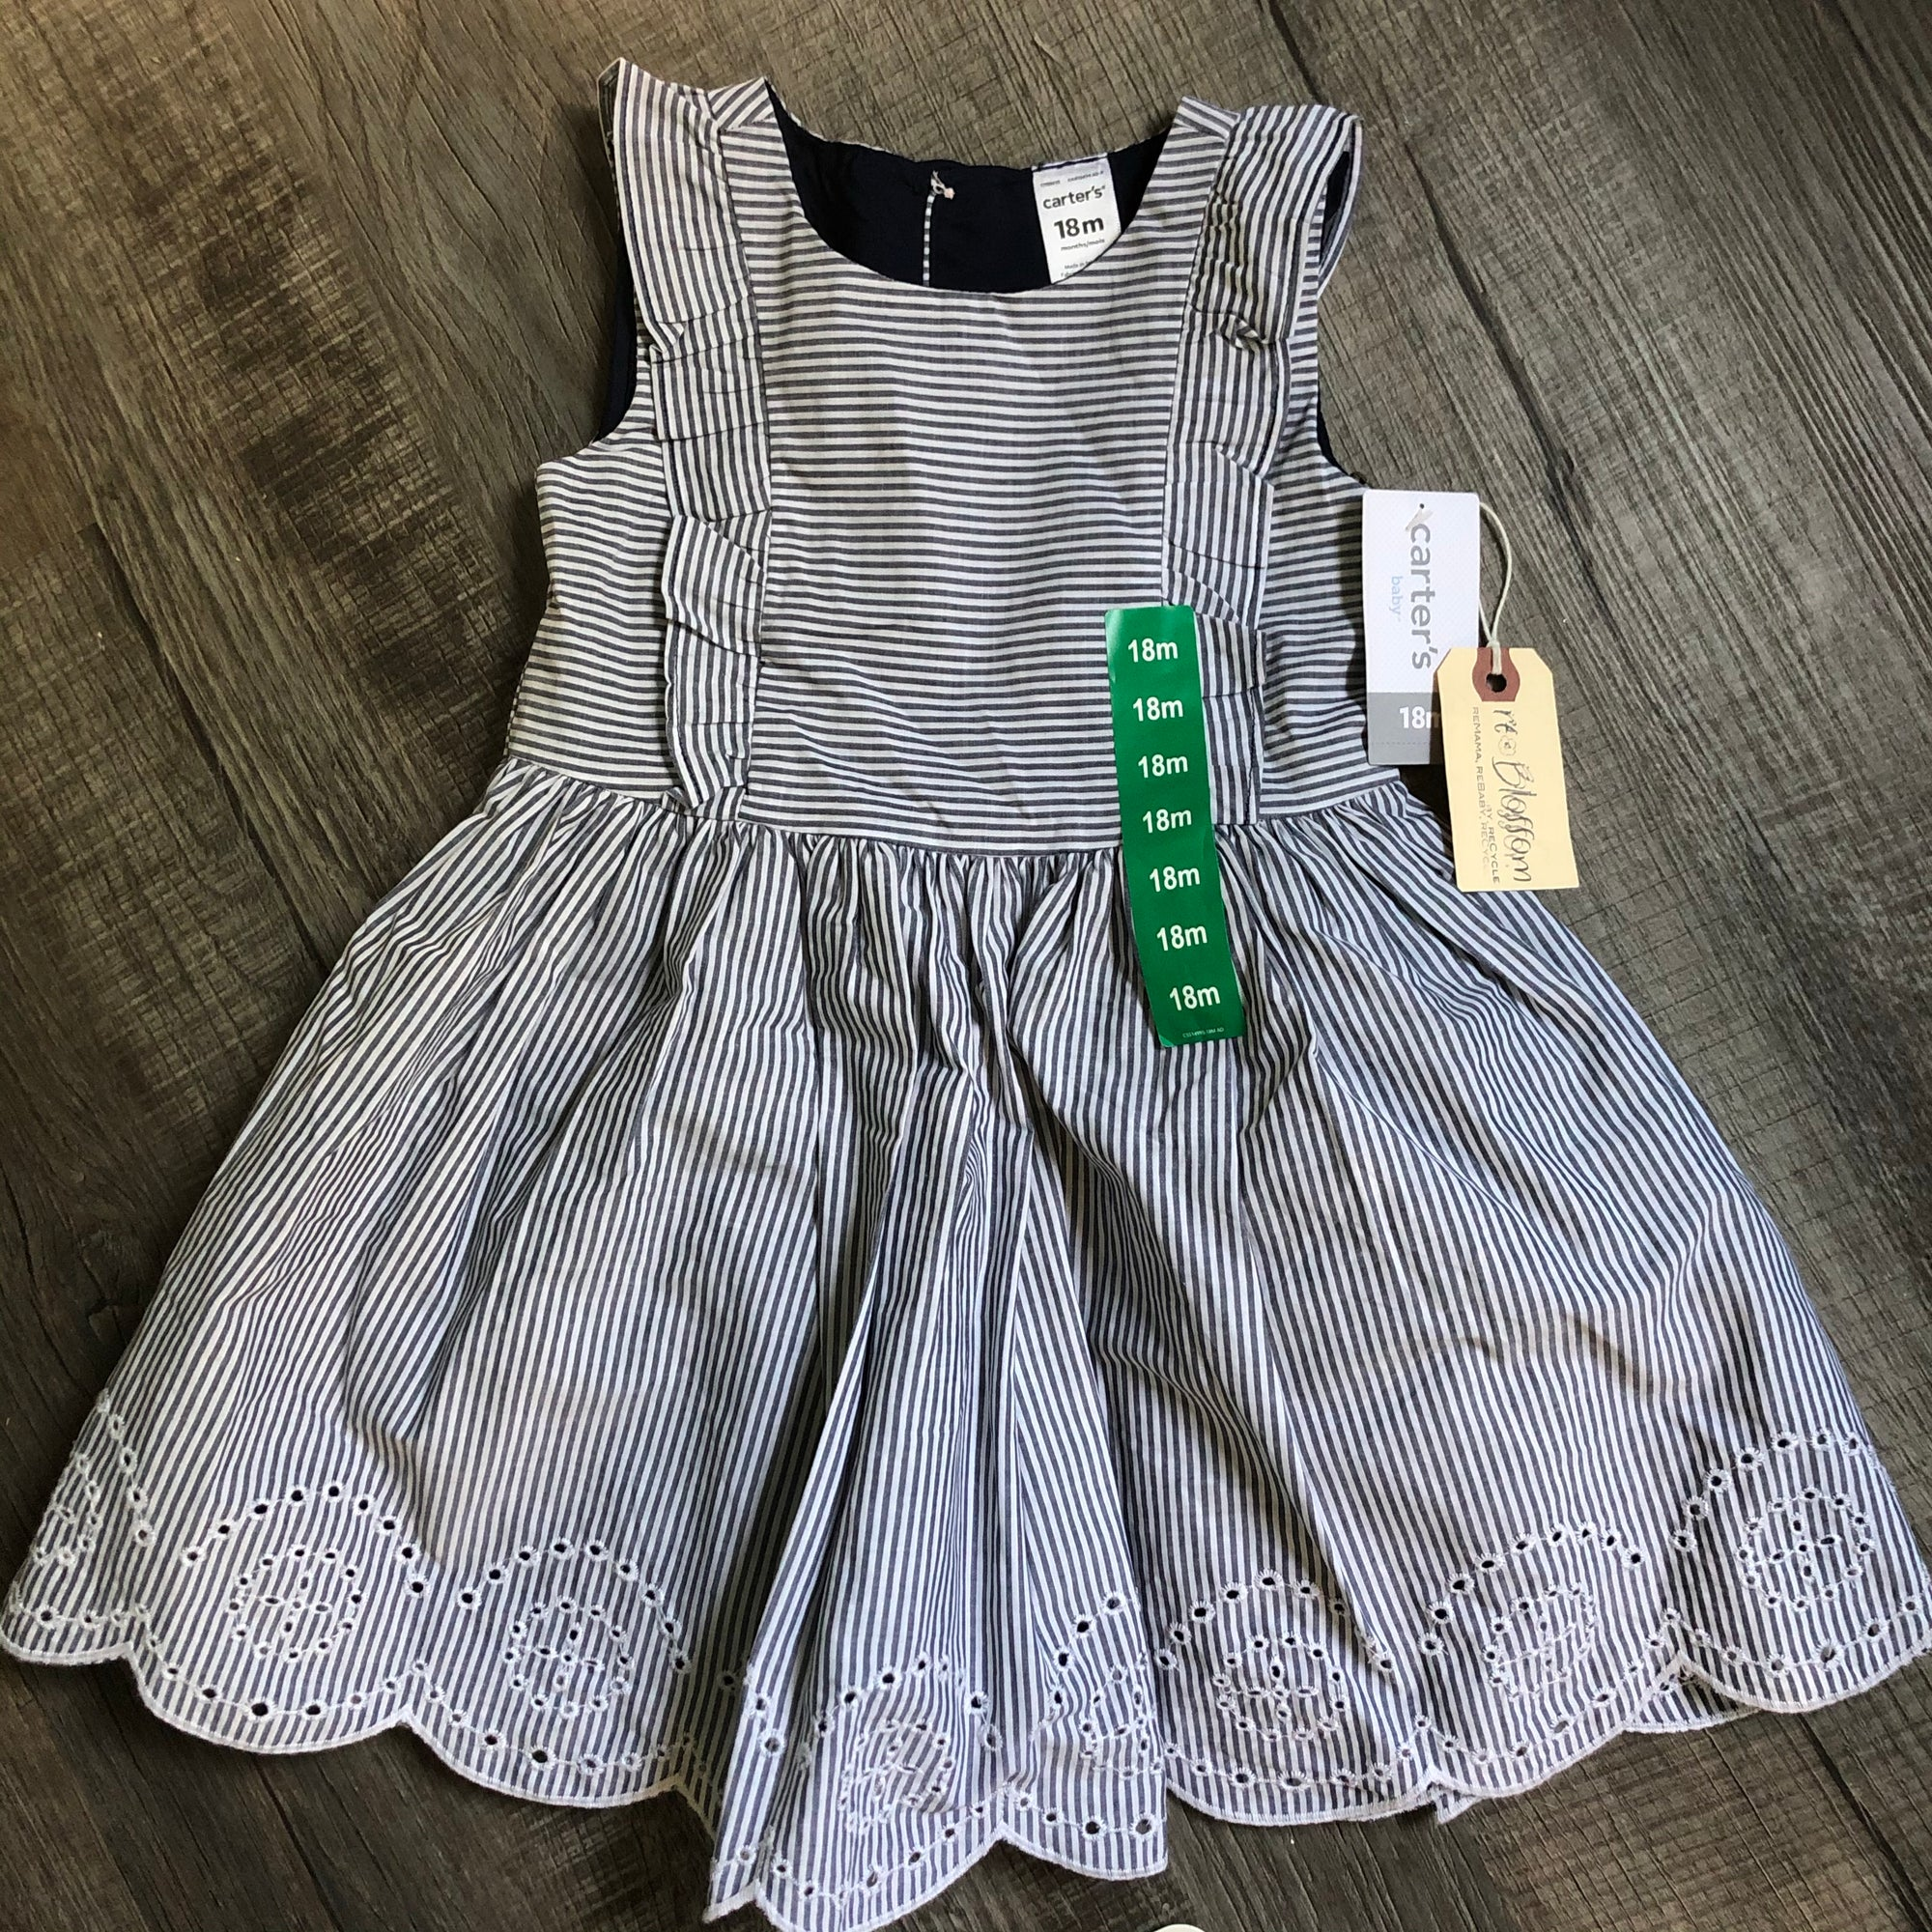 Resale 18 m Carter's Seersucker Eyelet Dress